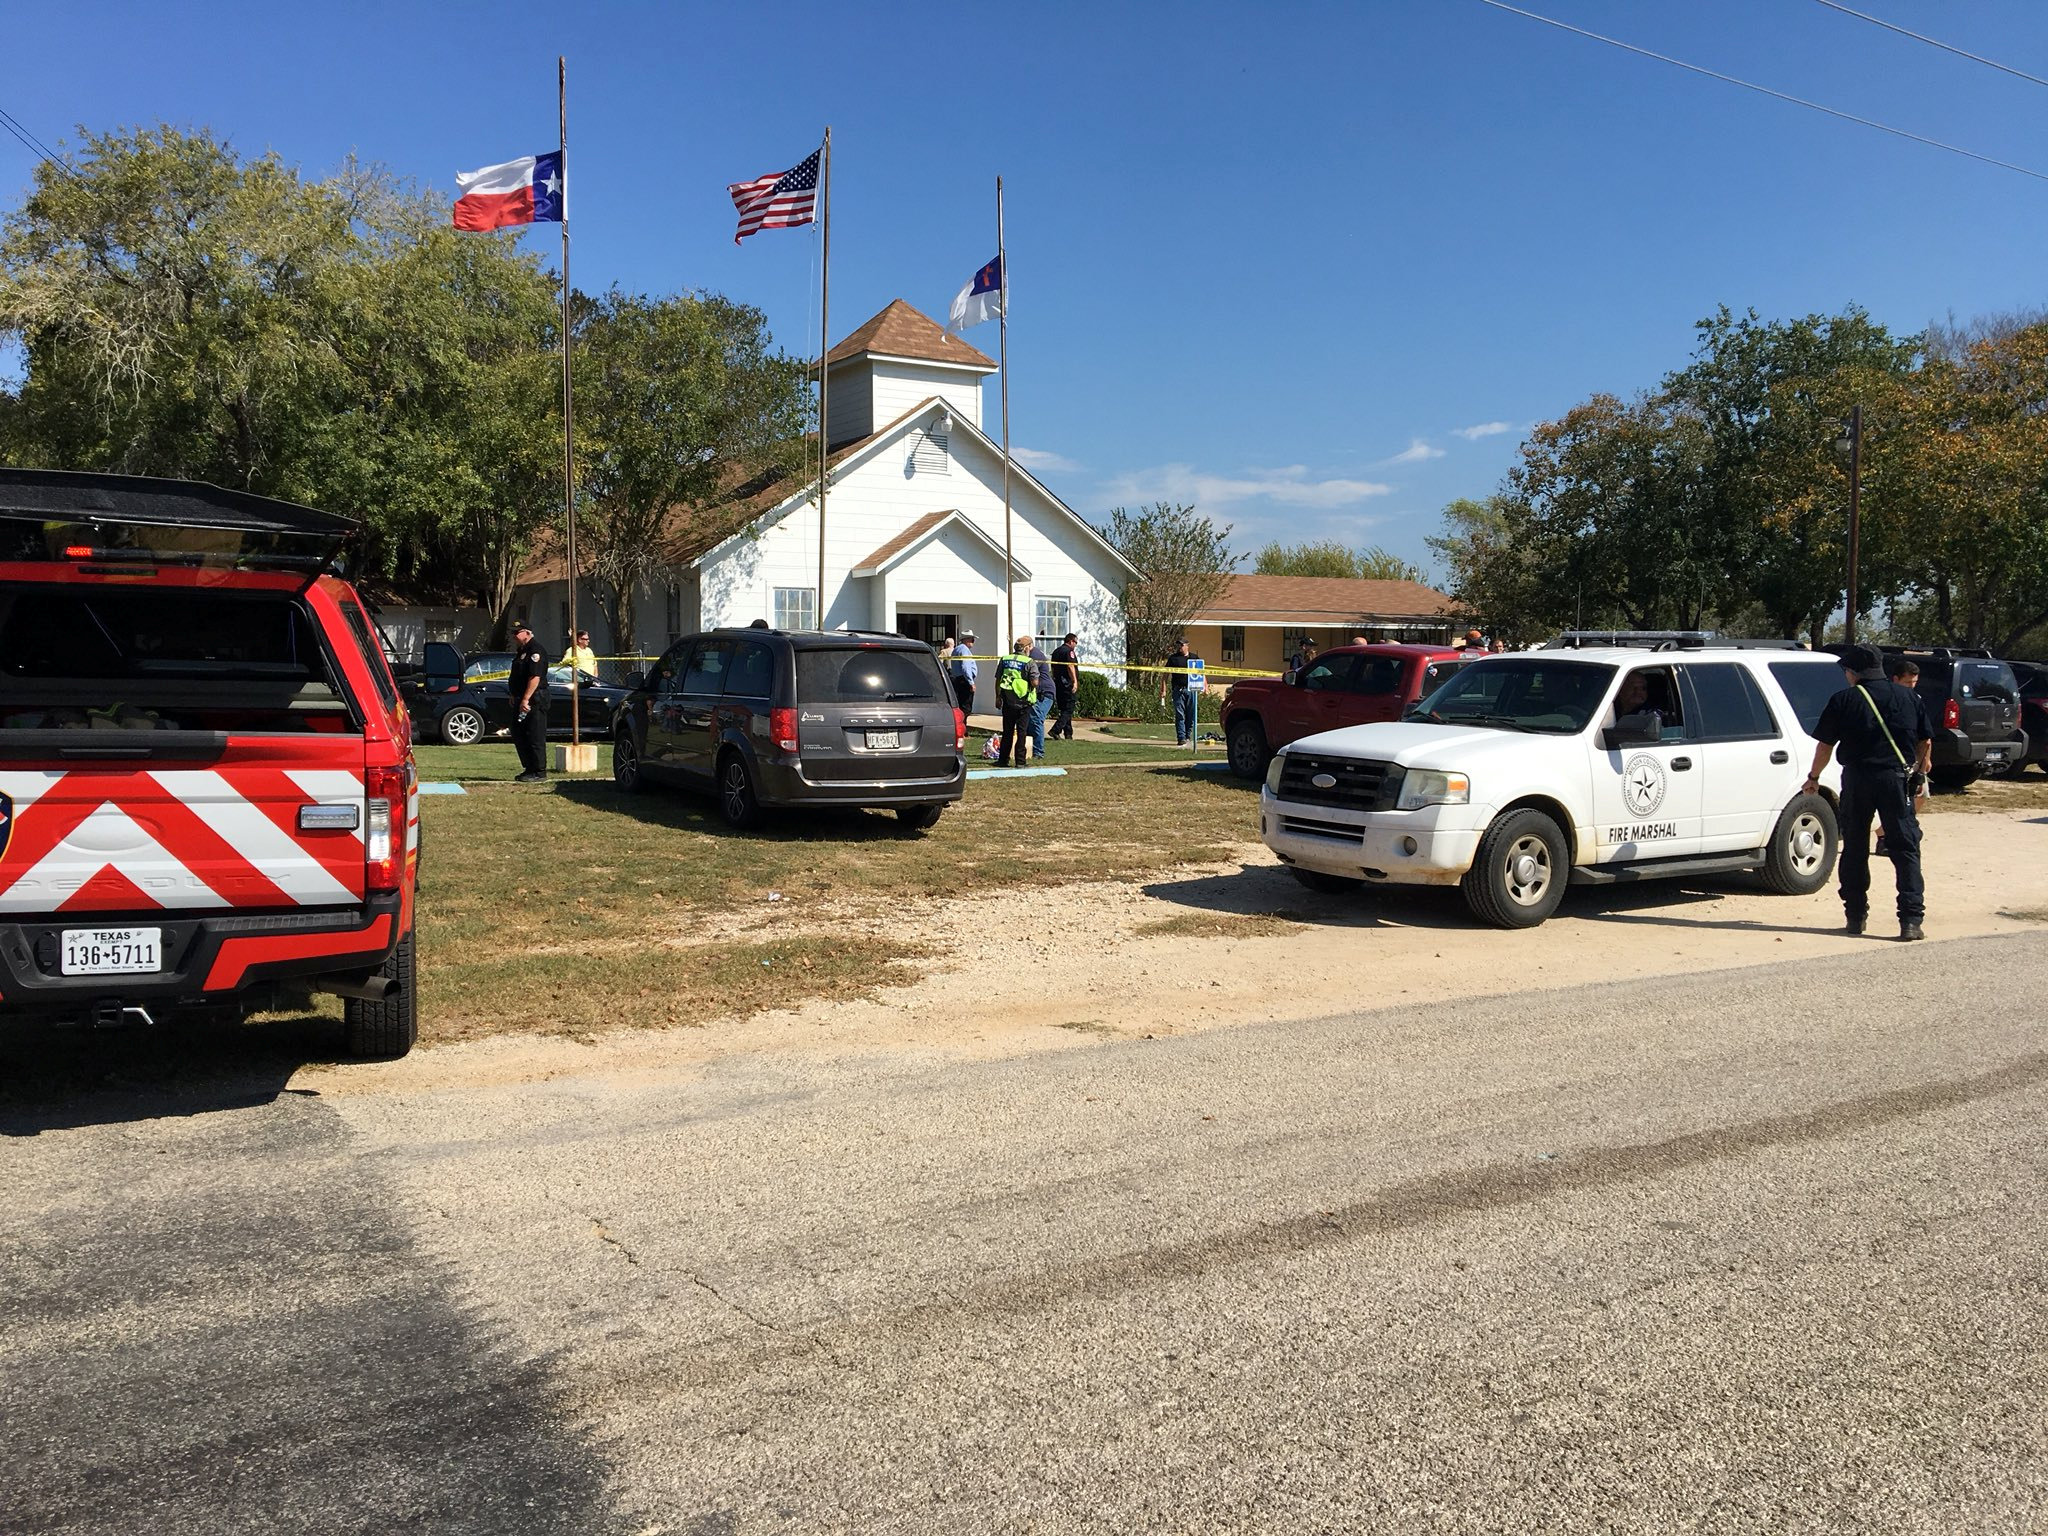 The area around a site of a mass shooting is taped out in Sutherland Springs, Texas, U.S., November 5, 2017, in this picture obtained via social media.